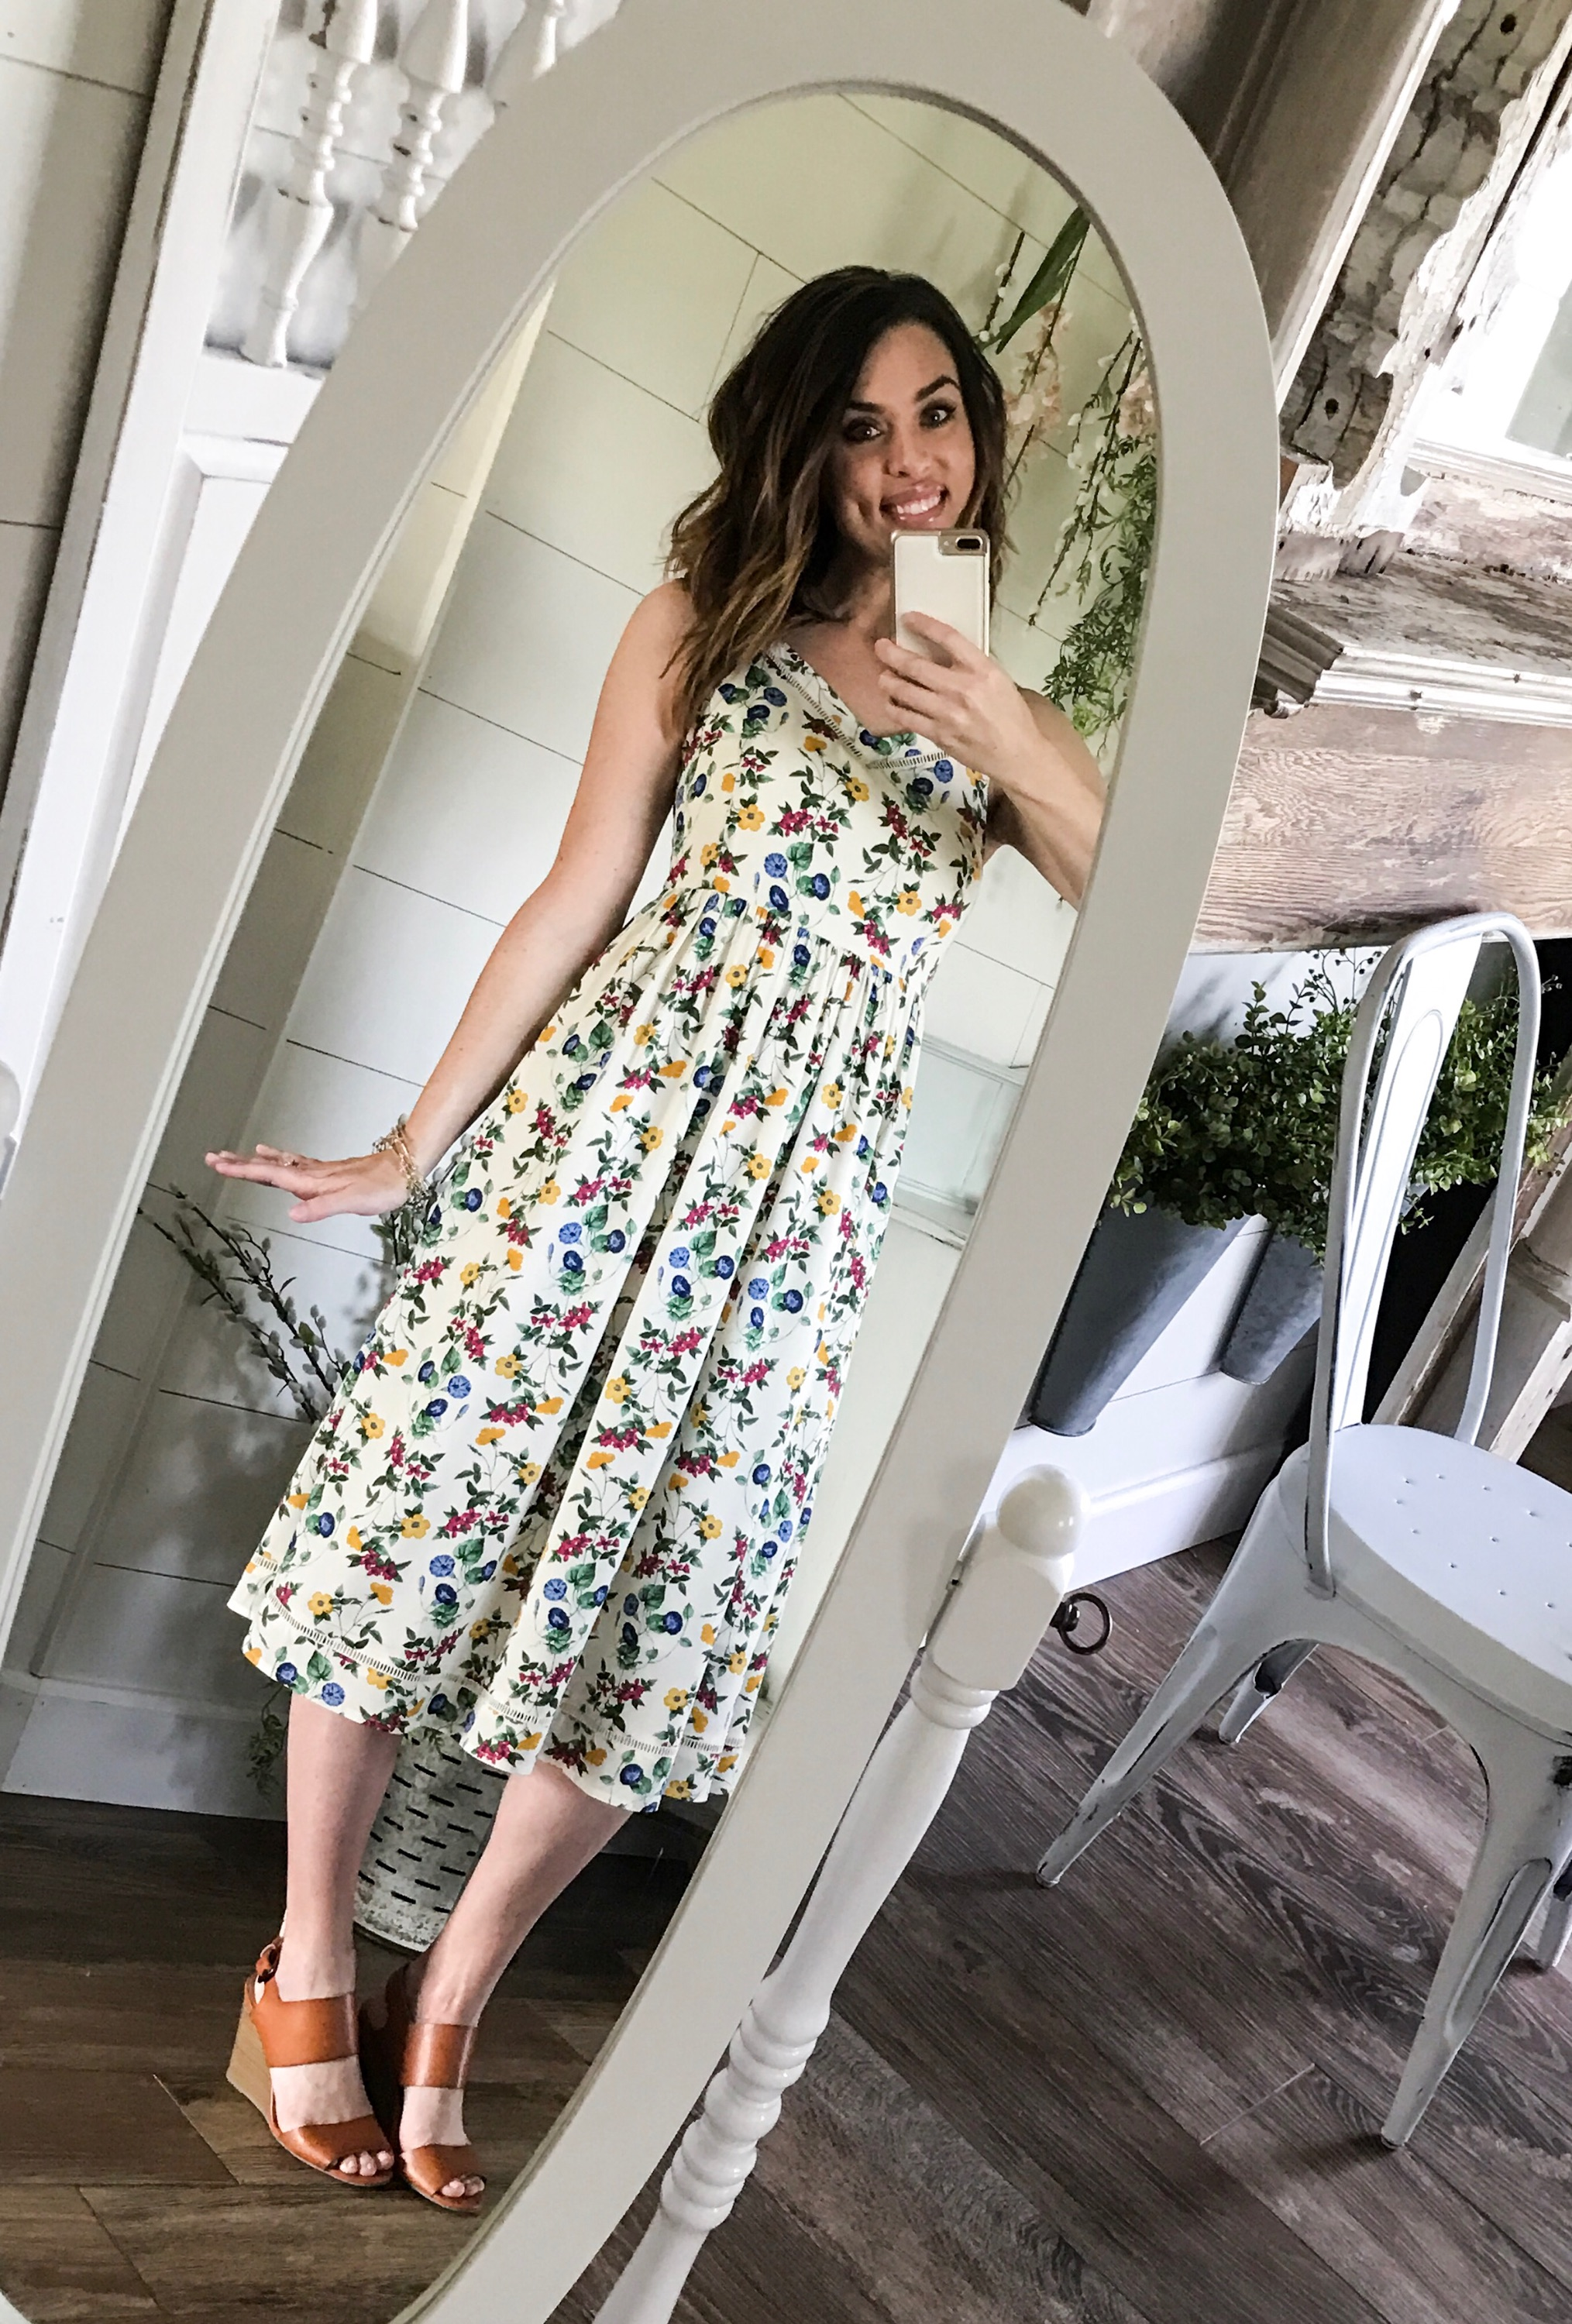 3dc2cdedef91e Ladies Modest Easter Dresses - Down To Earth Bali